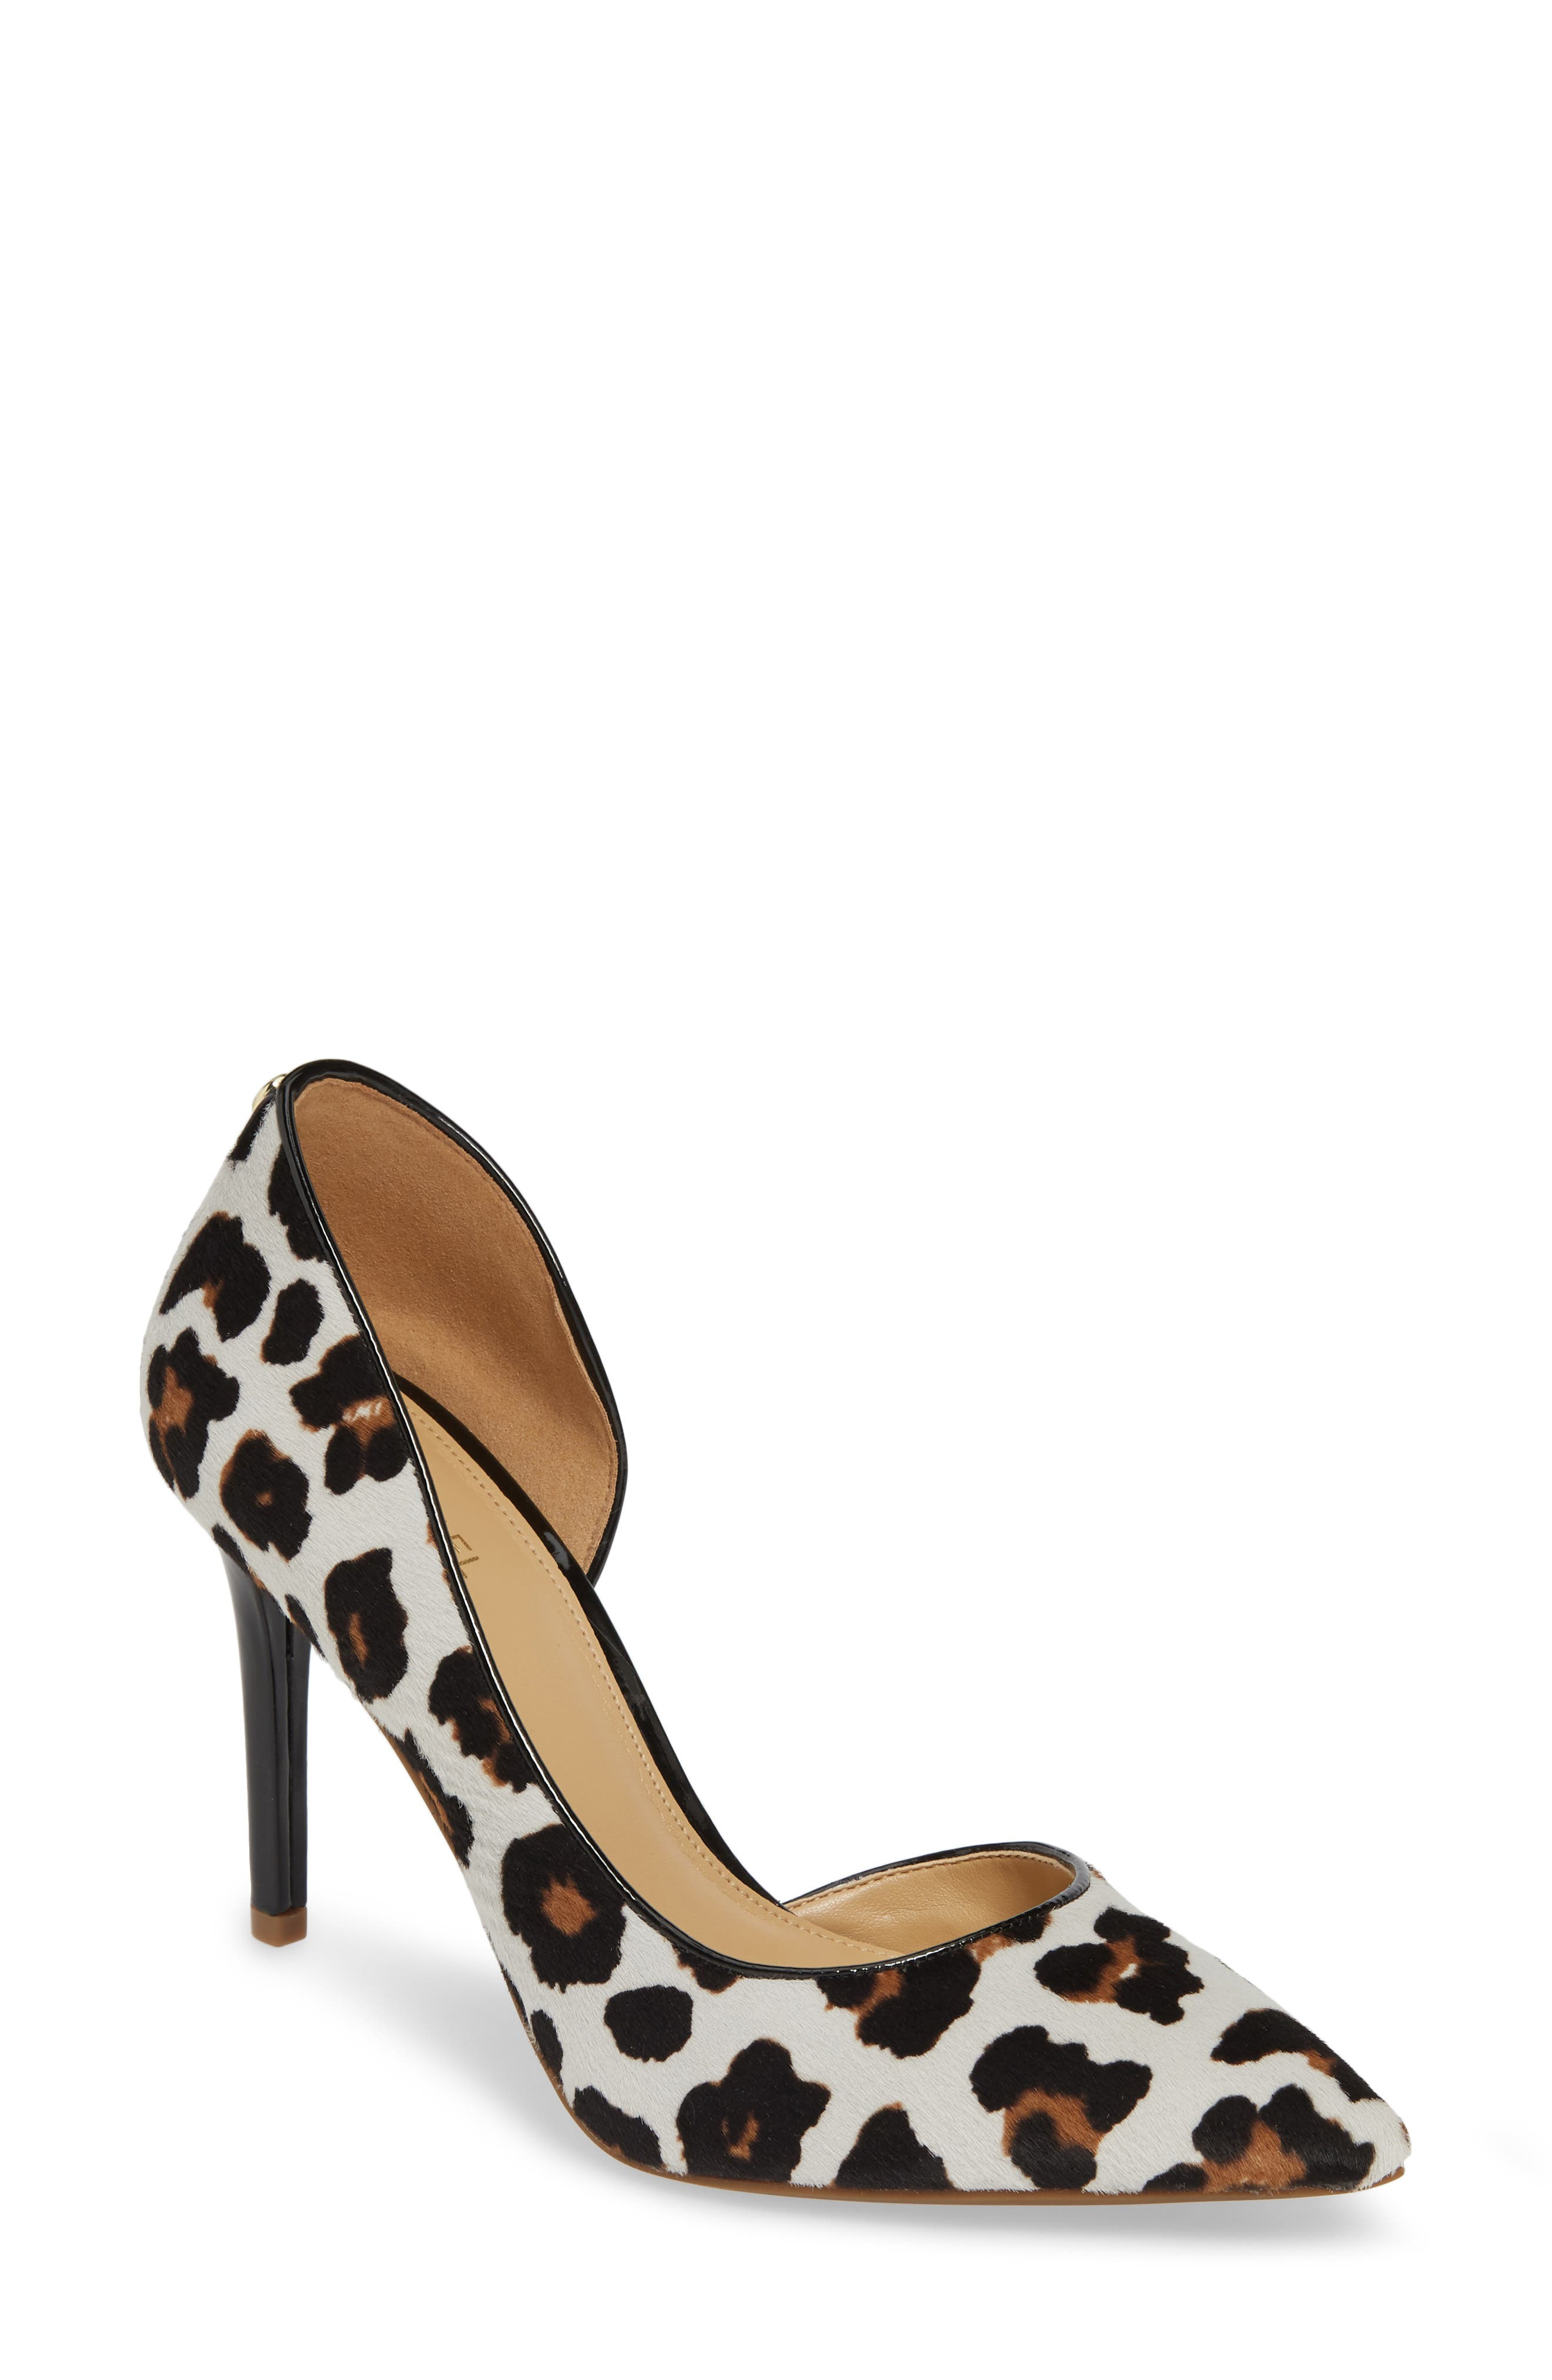 MICHAEL MICHAEL KORS Lucile Flex Pump, Main, color, 203